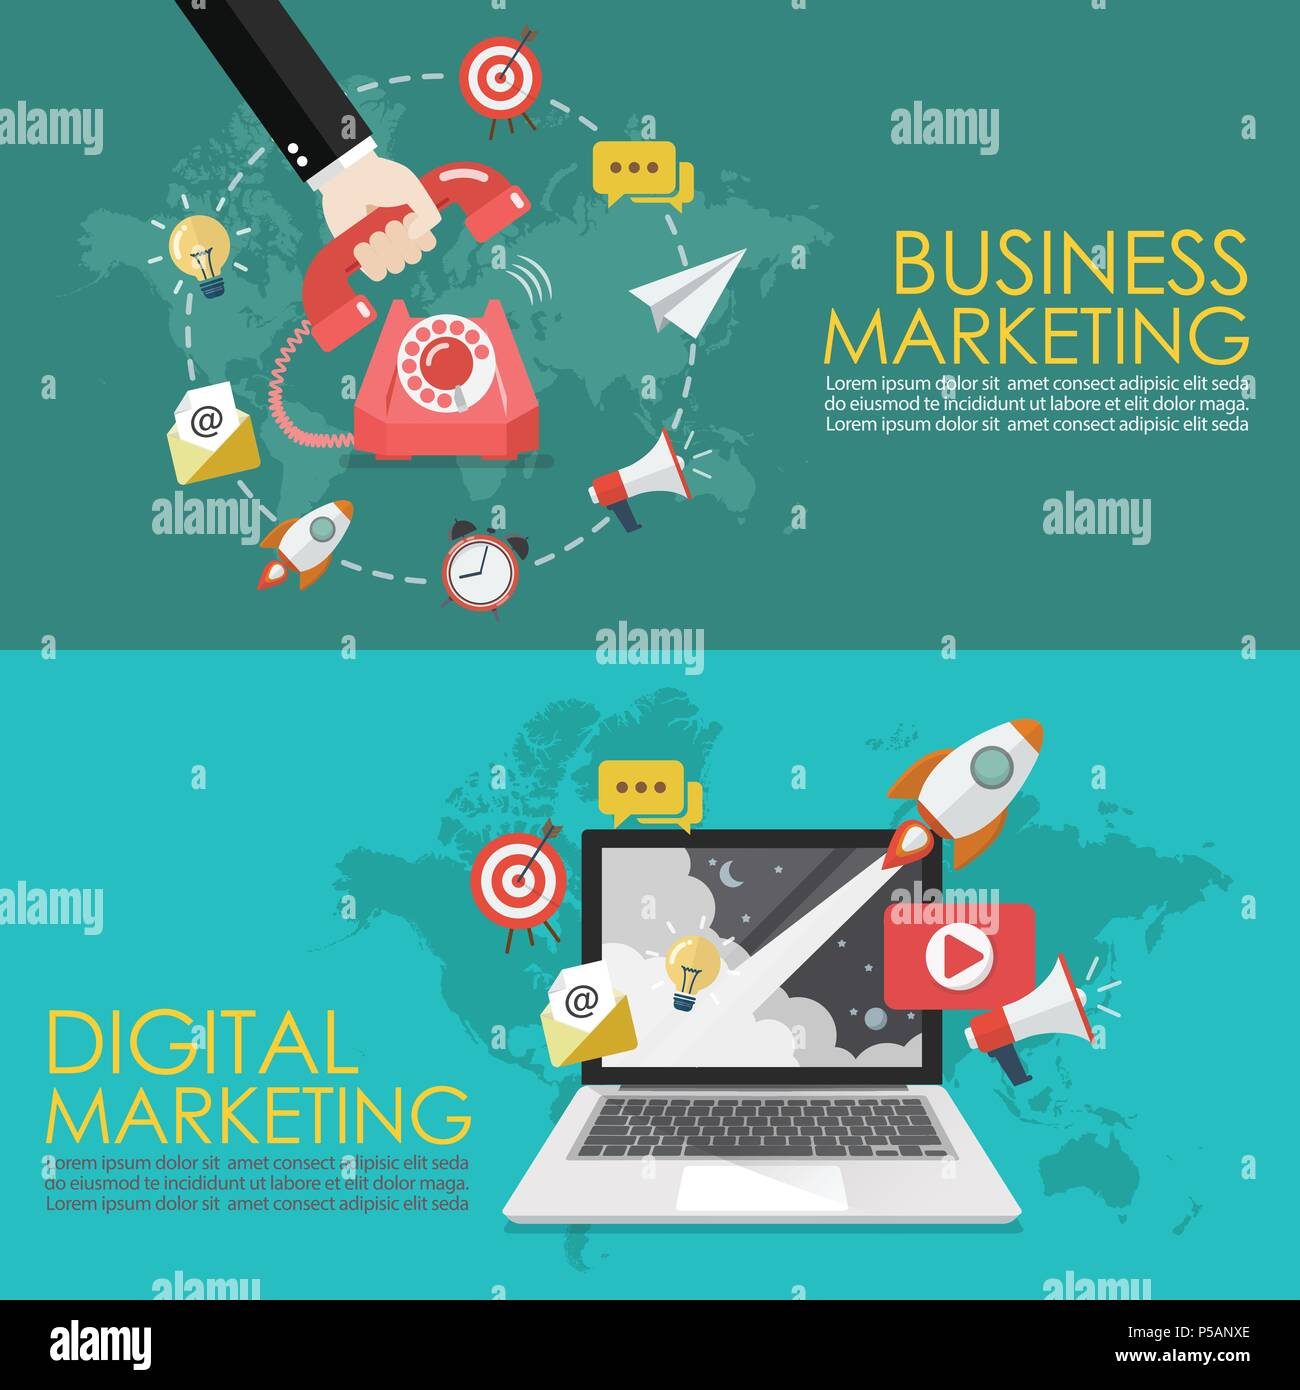 26+ Digital Marketing Vector Illustration